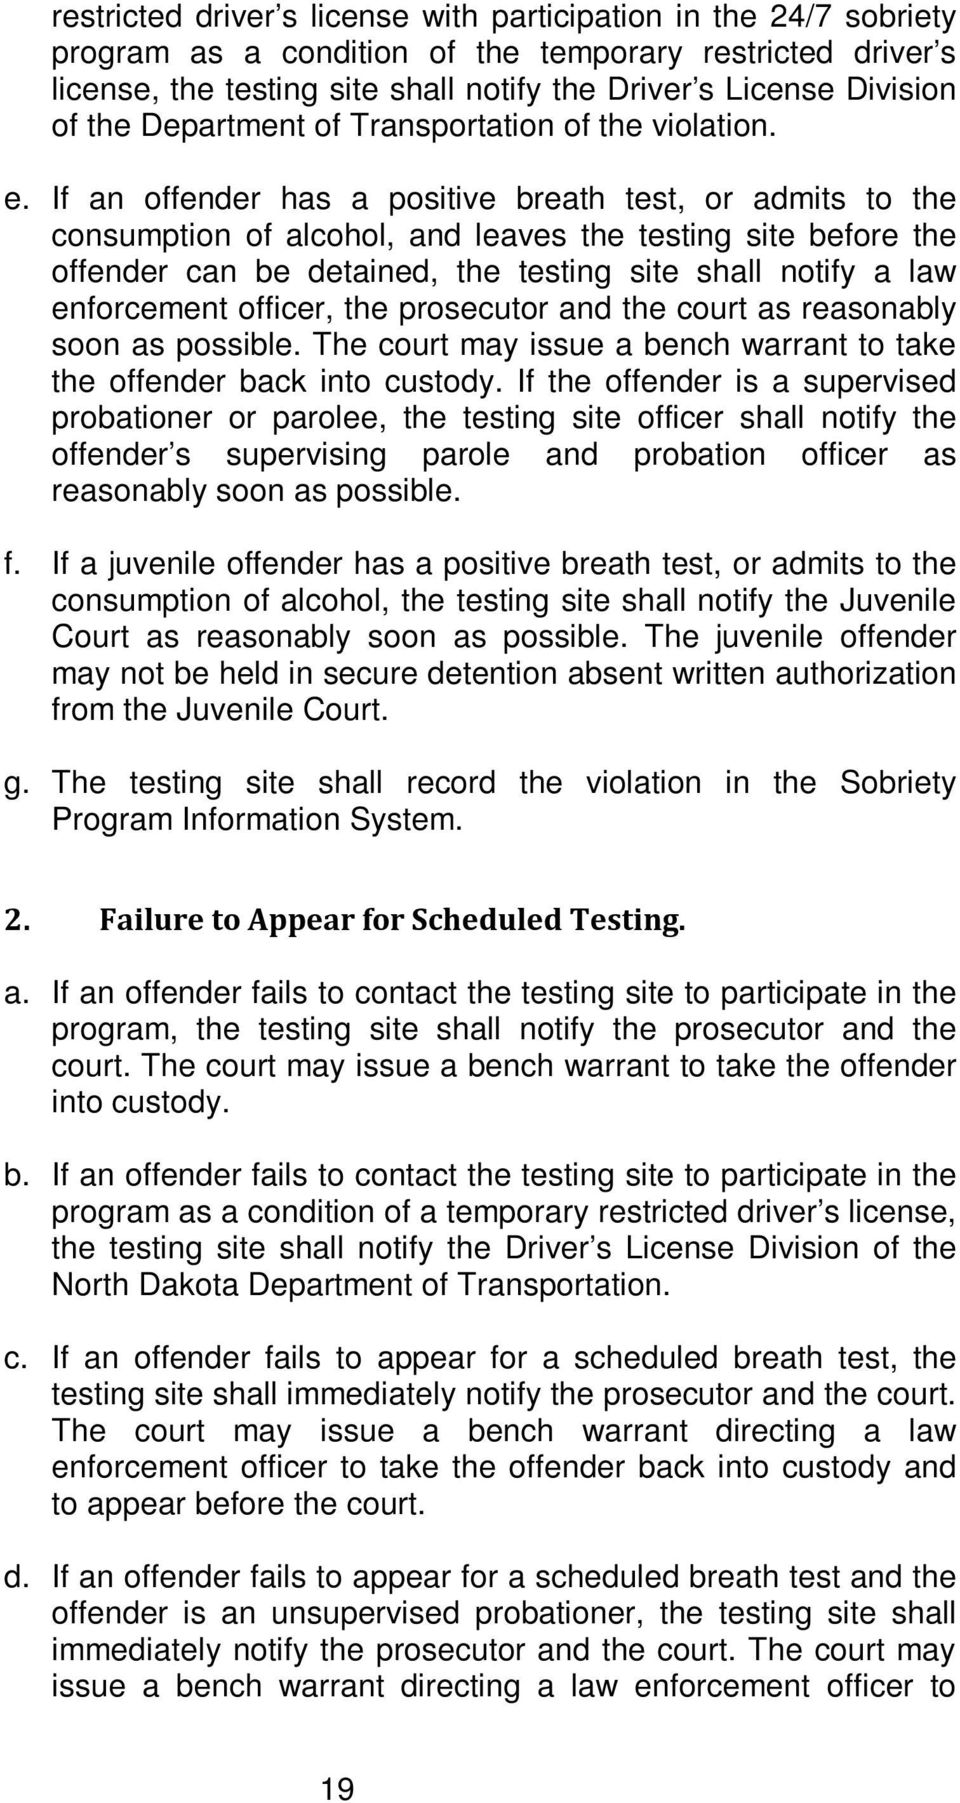 If an offender has a positive breath test, or admits to the consumption of alcohol, and leaves the testing site before the offender can be detained, the testing site shall notify a law enforcement